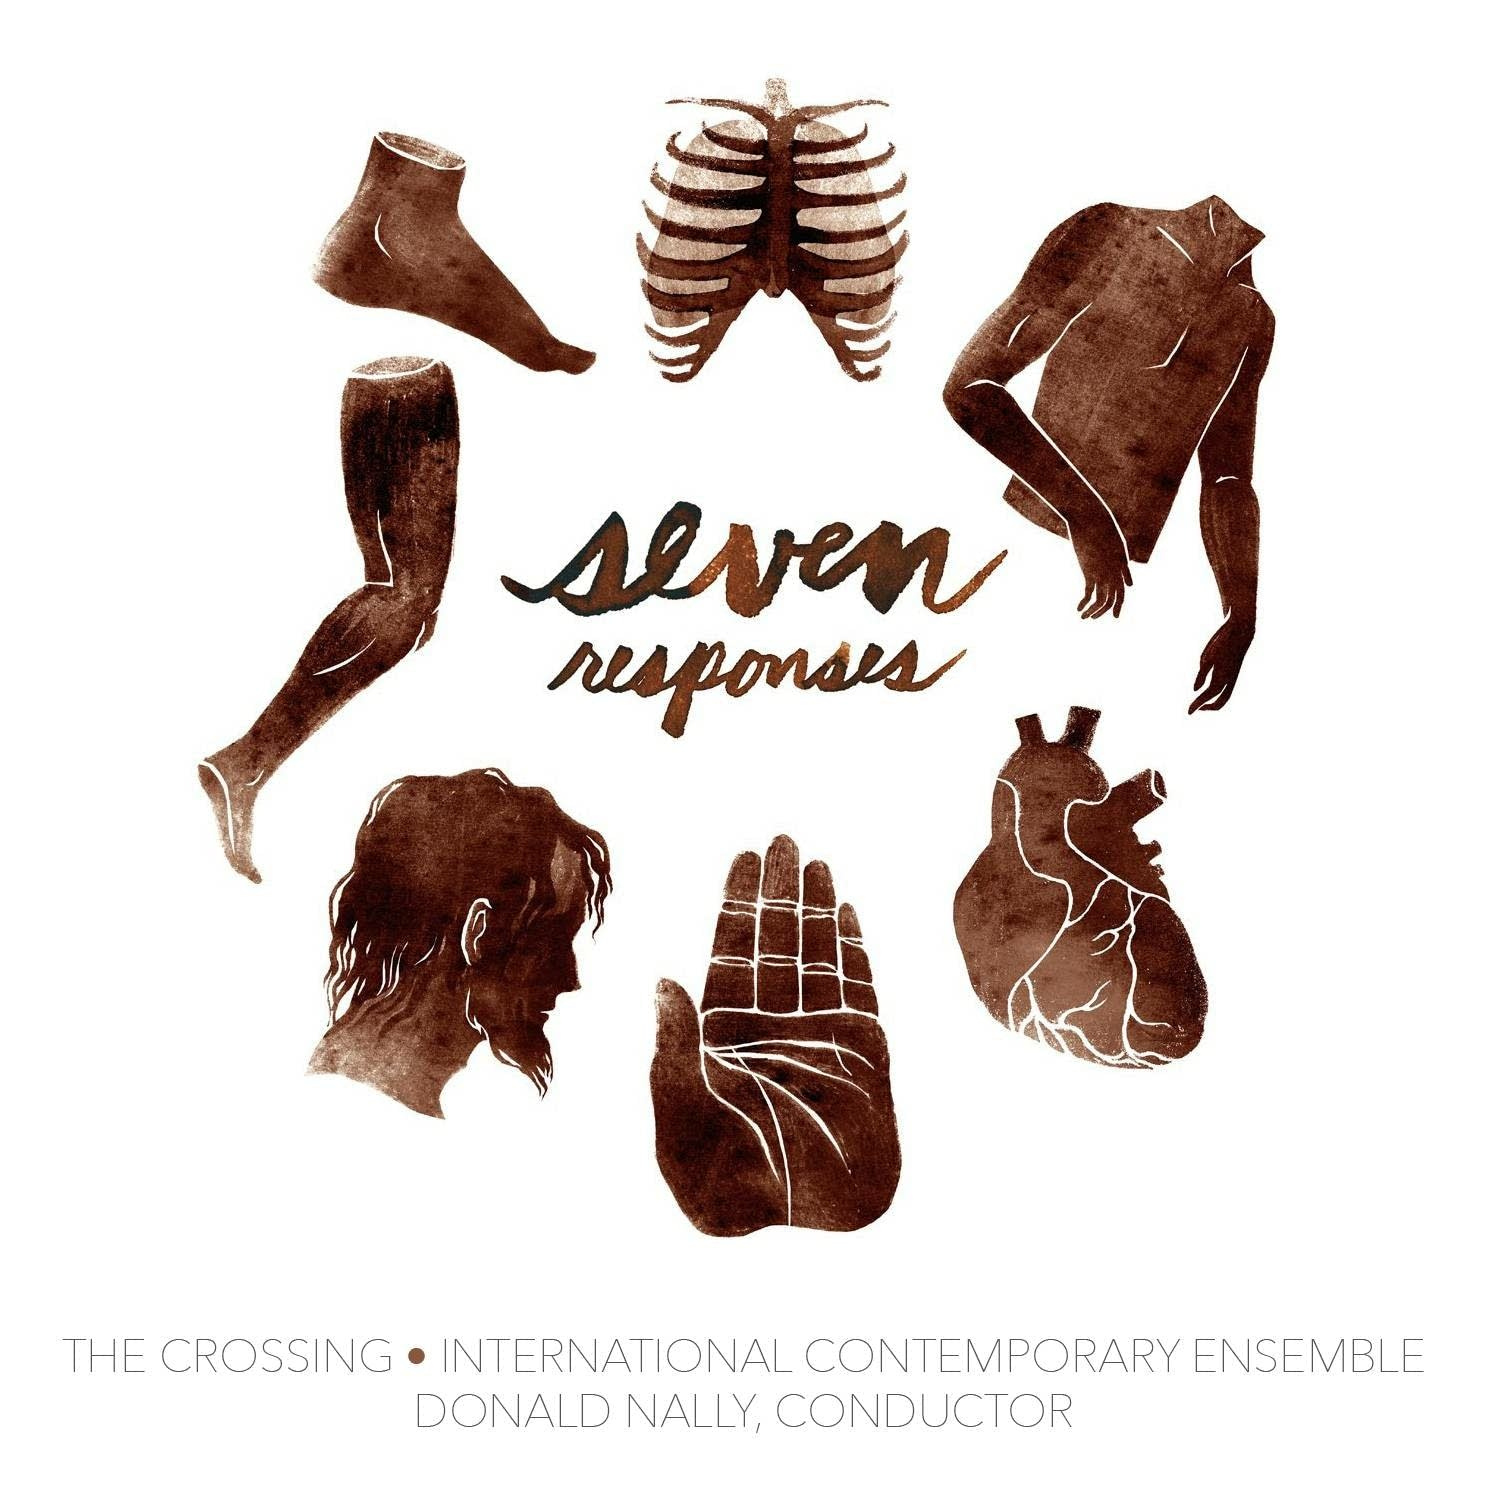 International Contemporary Ensemble and The Crossing: 'Seven Reponses'